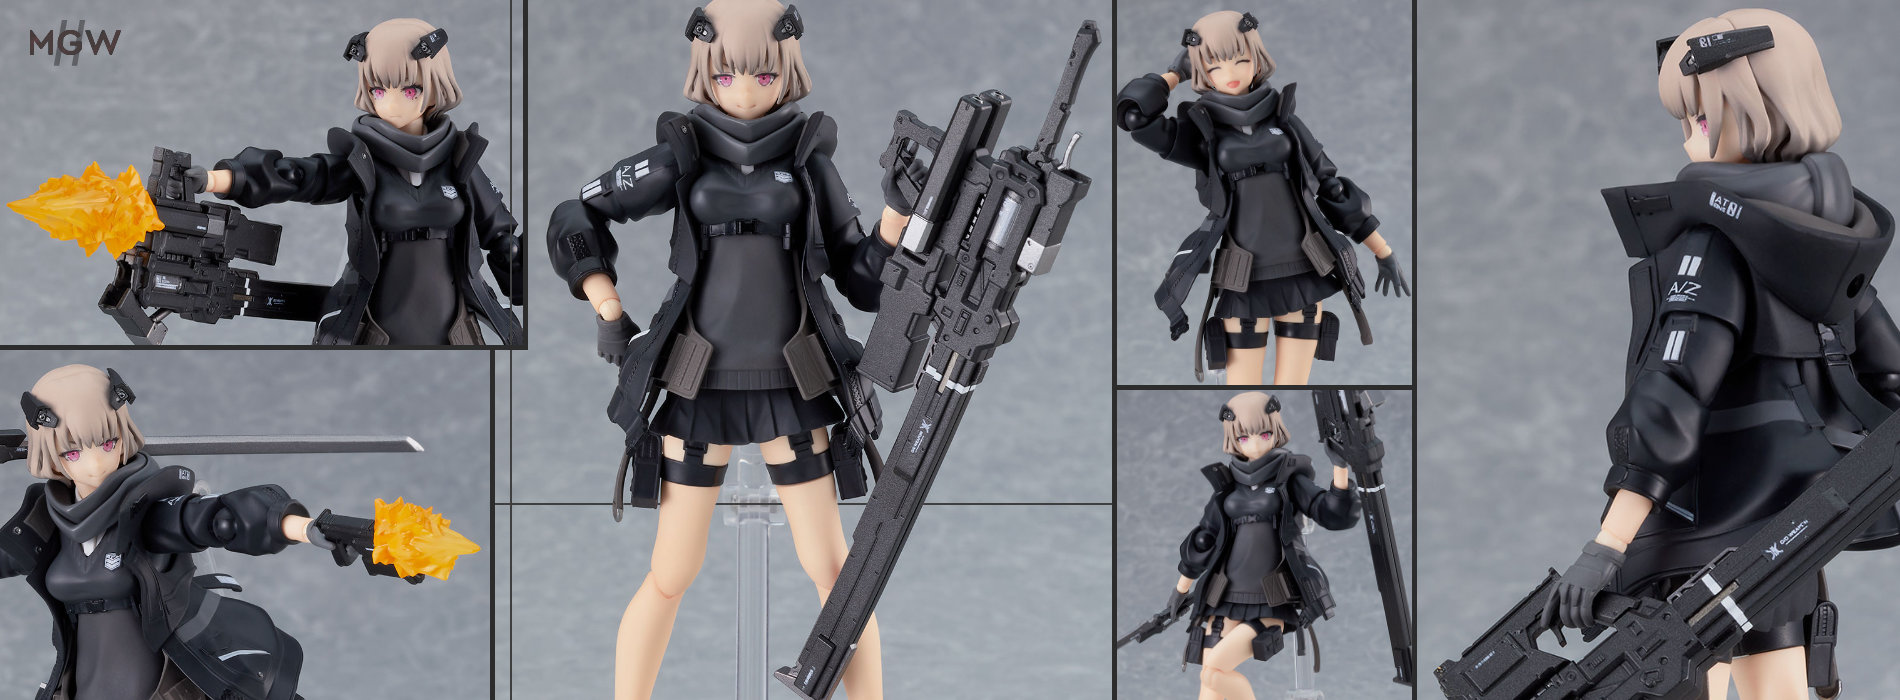 figma A ZB by Max Factory with illustration by neco